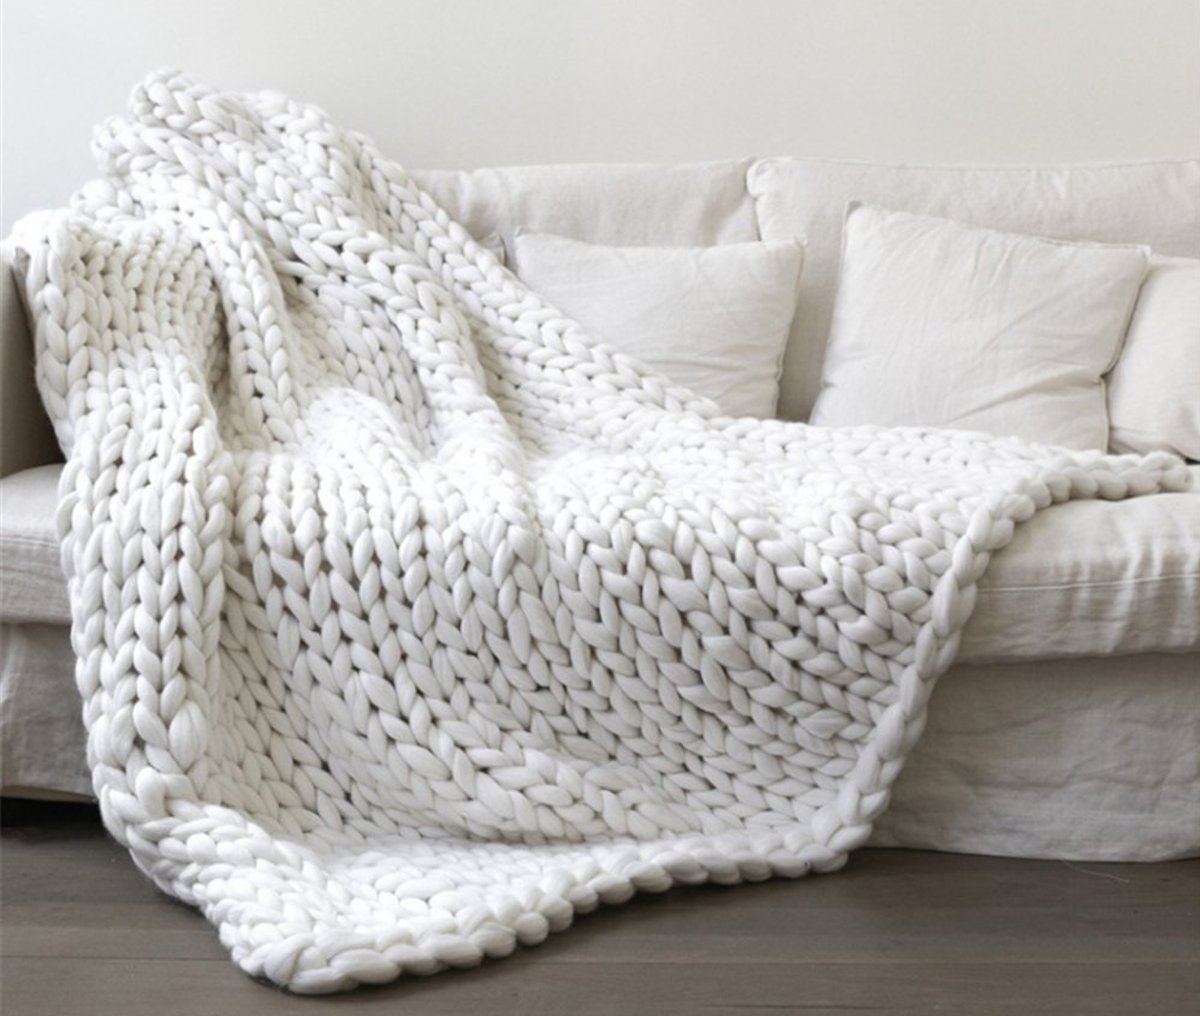 white chunky knite throw blanket on white couch